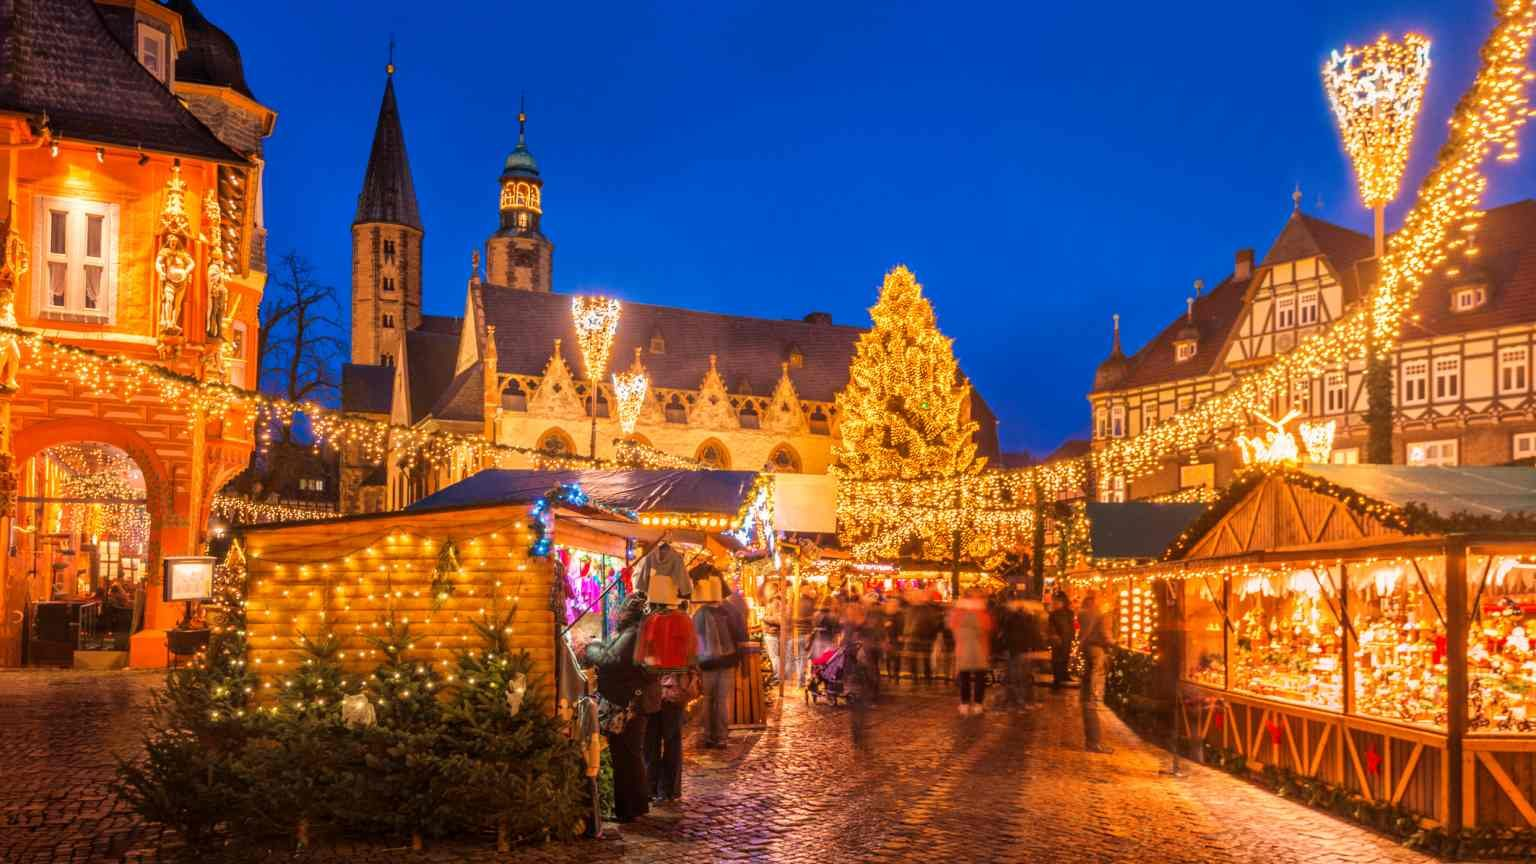 The traditional Christmas Market on the historic Market Square of Goslar, Germany at dusk.